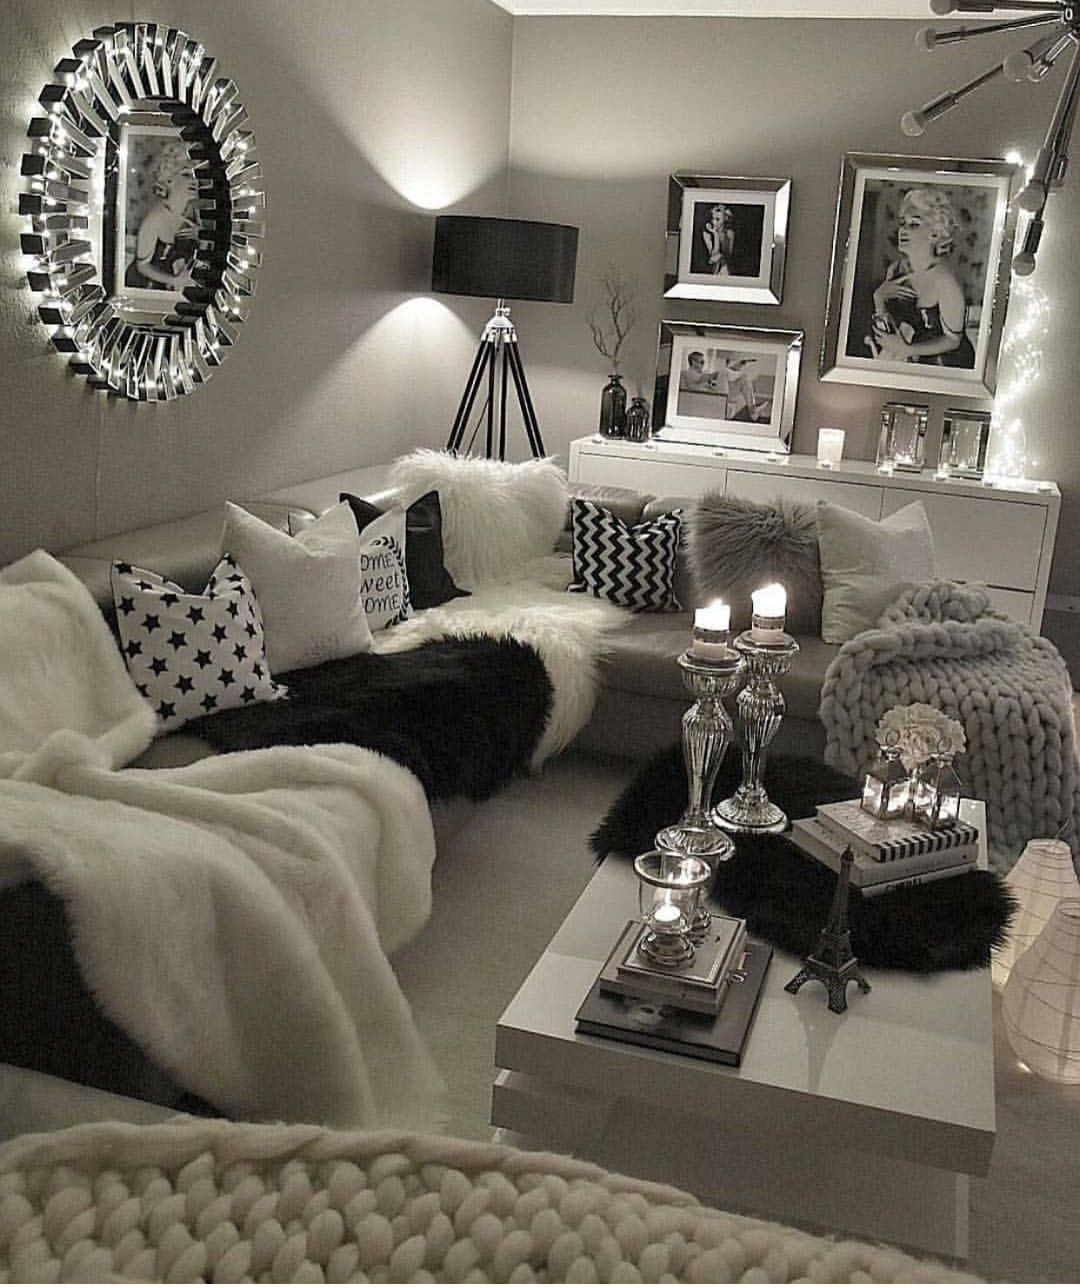 Pin By Lifestyle Inspiration On Home Romantic Living Room Farm House Living Room Glam Living Room